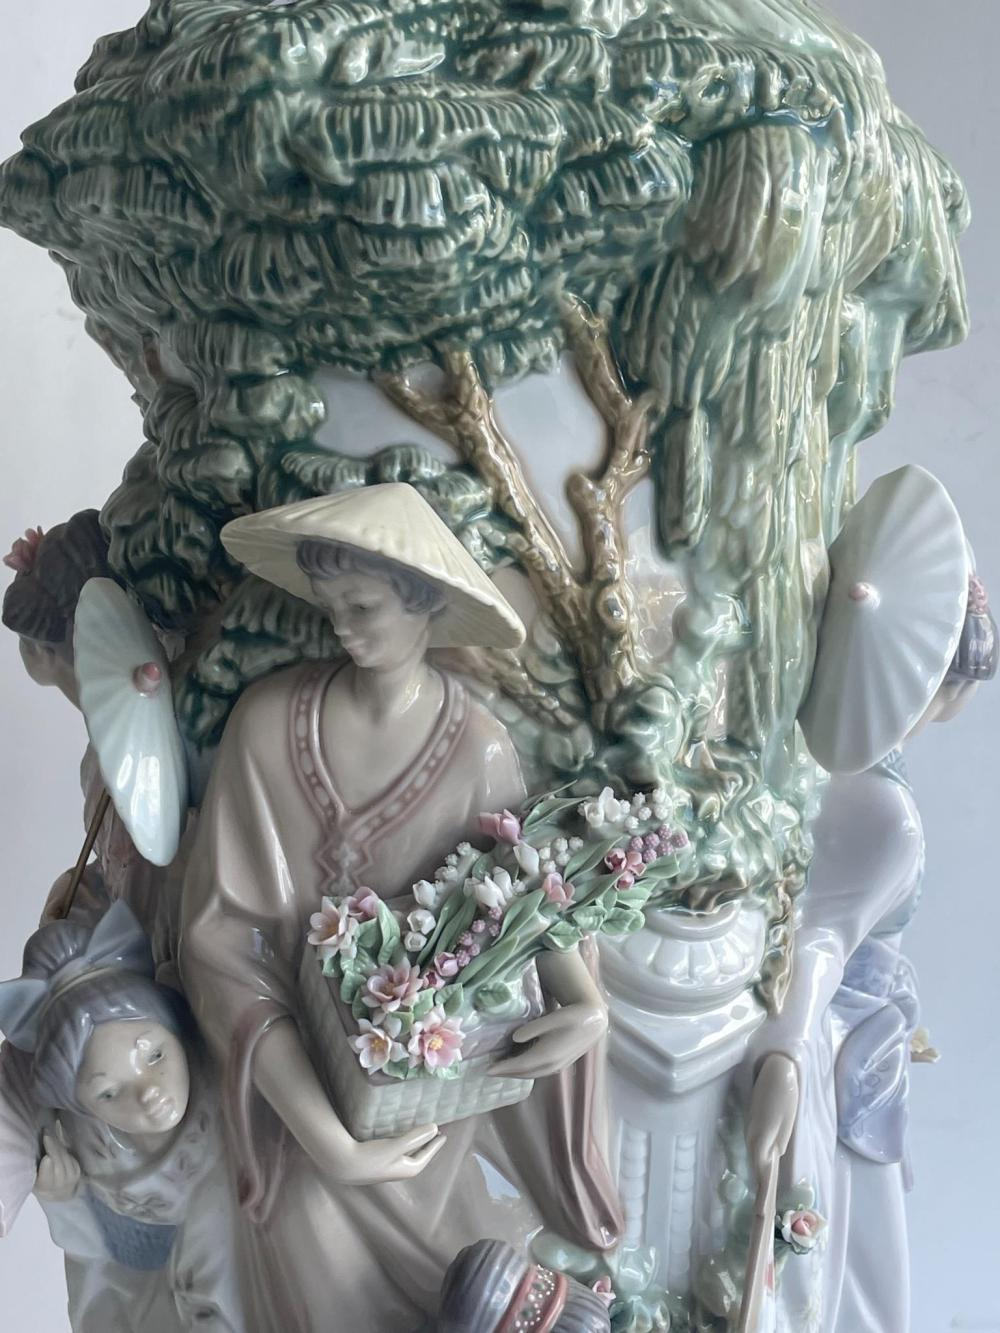 Lladro rare Jarron Japanese vase #1536 48 cm. (18.90 in.), with stand 55 cm. (21.65 in.)